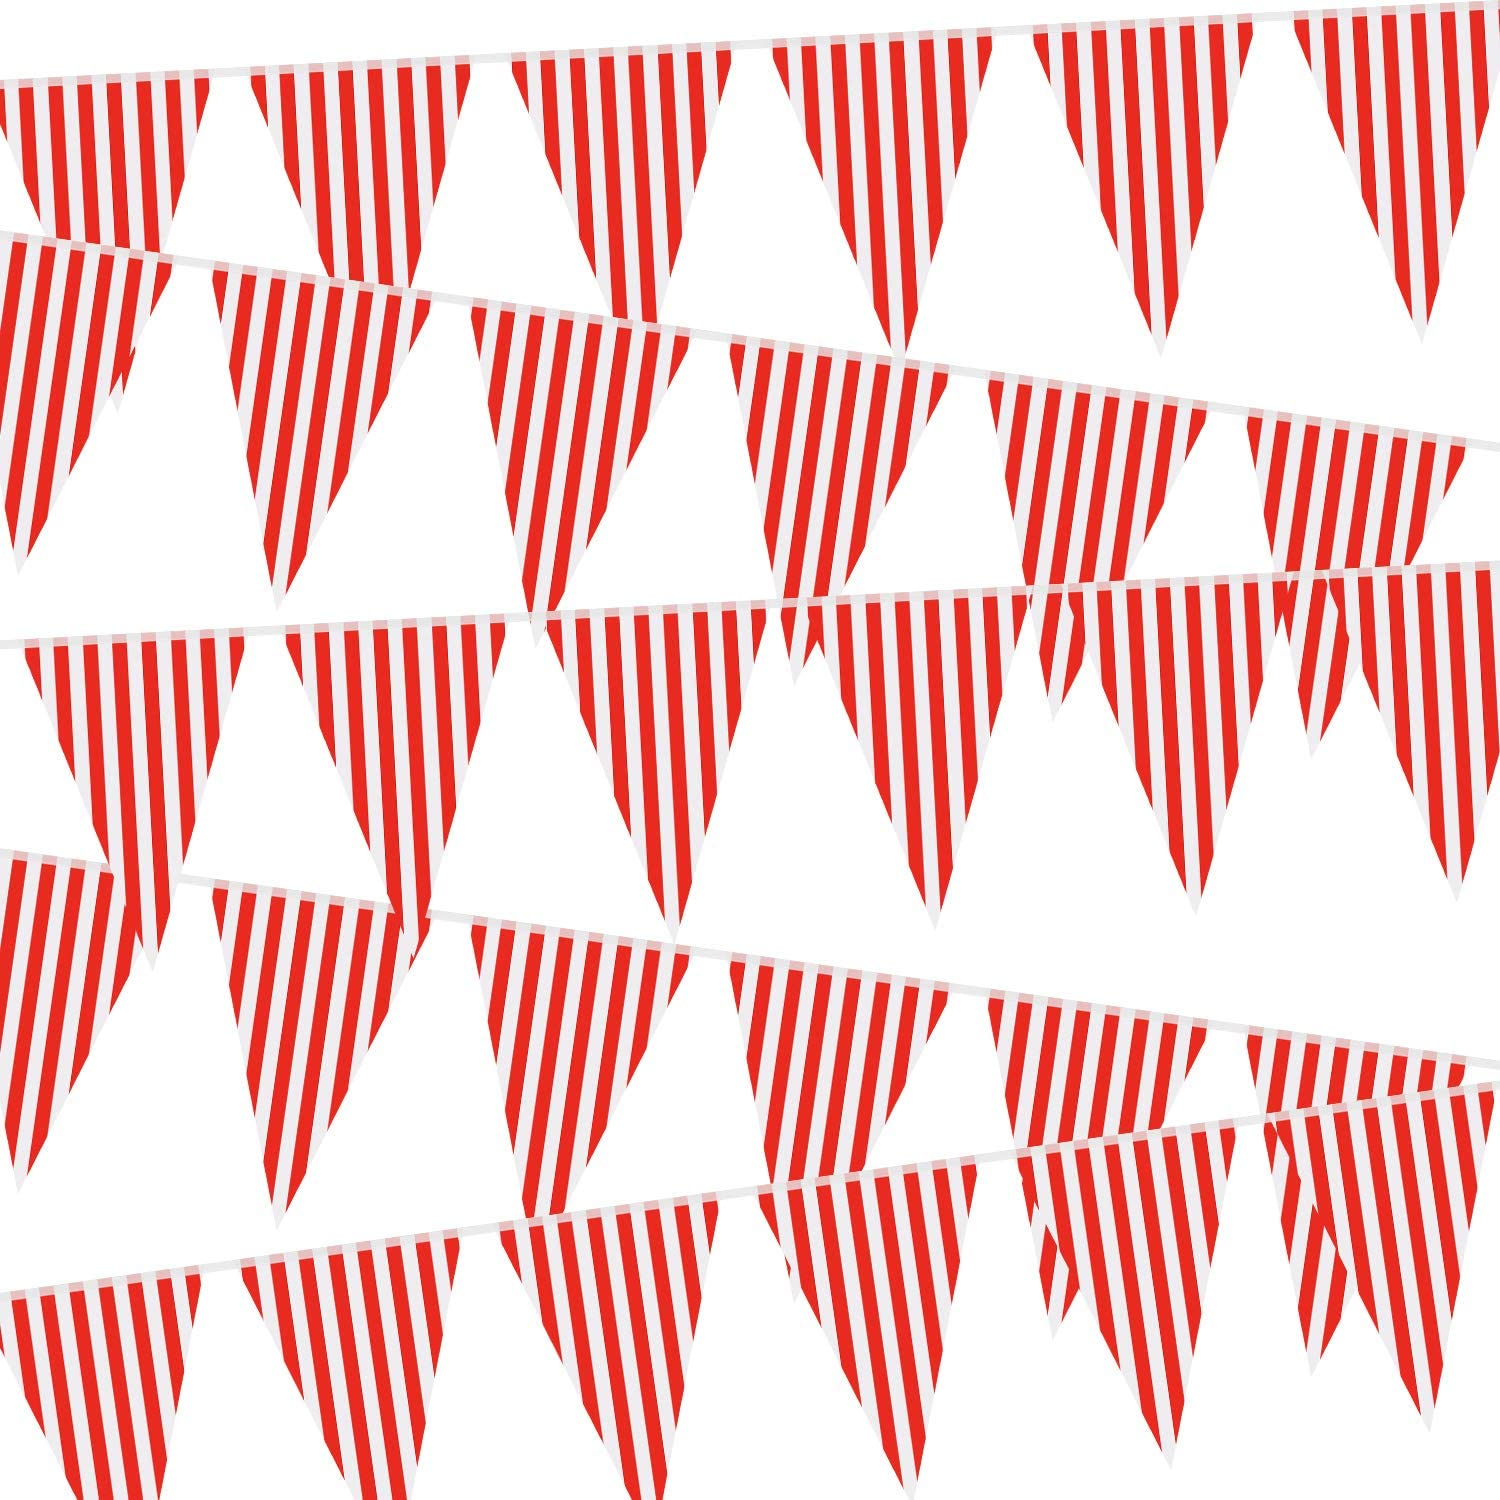 5 Packs Carnival Circus Party Decorations Supplies, Circus Carnival Bunting Banner, Red and White Pennant Banner Triangle Bunting Flag for Carnival Birthday Party, 7.4 x 10.8 Inch